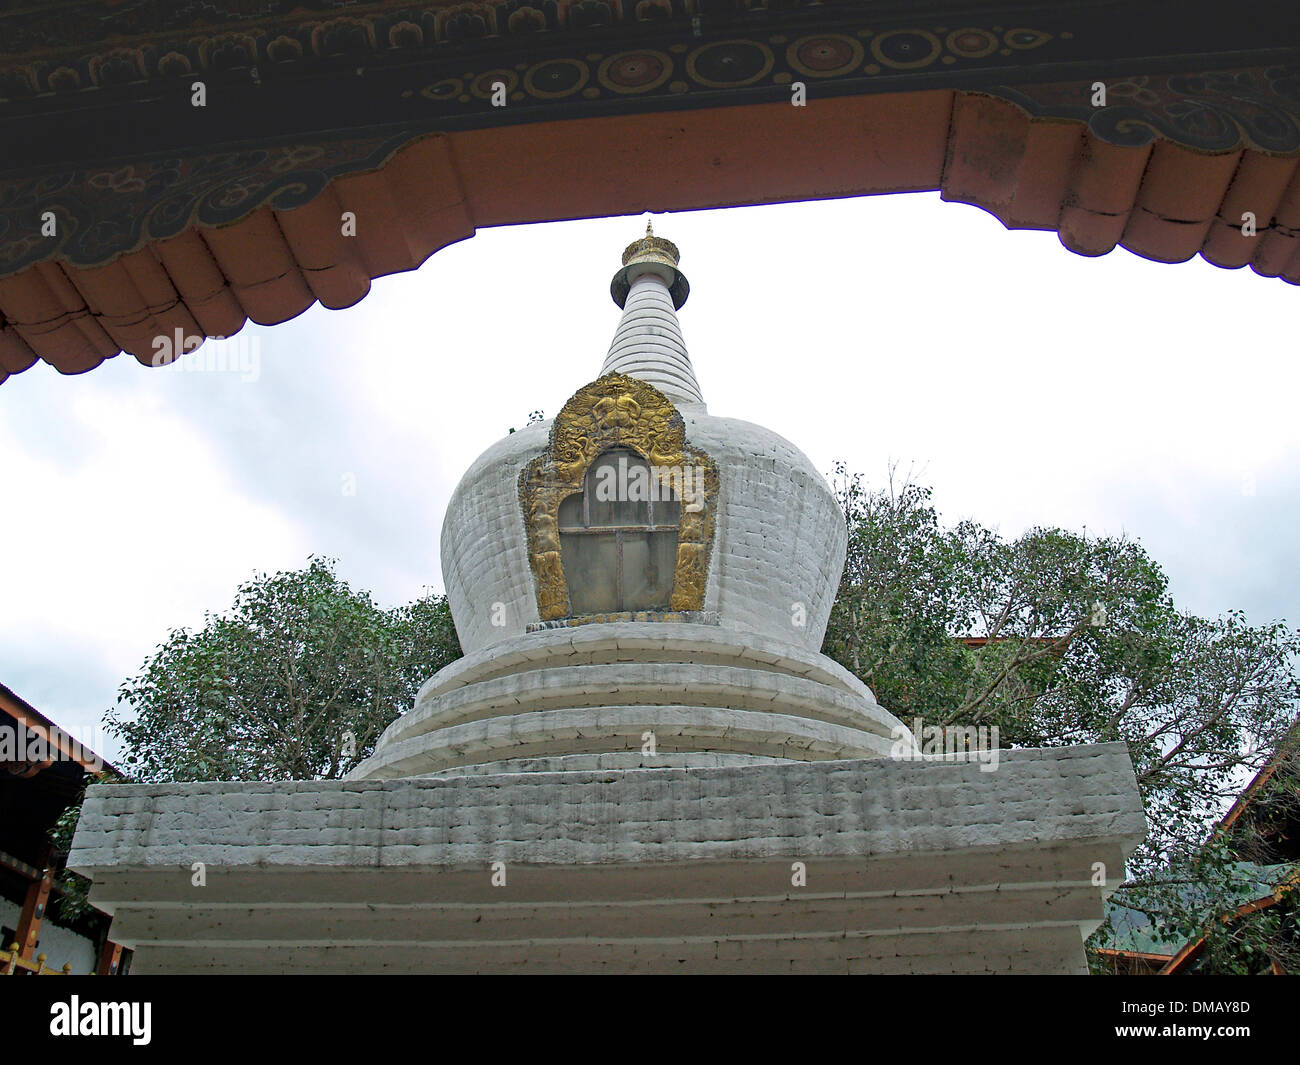 A chorten in Punakha Dzong containing sacred remains,Bhutan - Stock Image